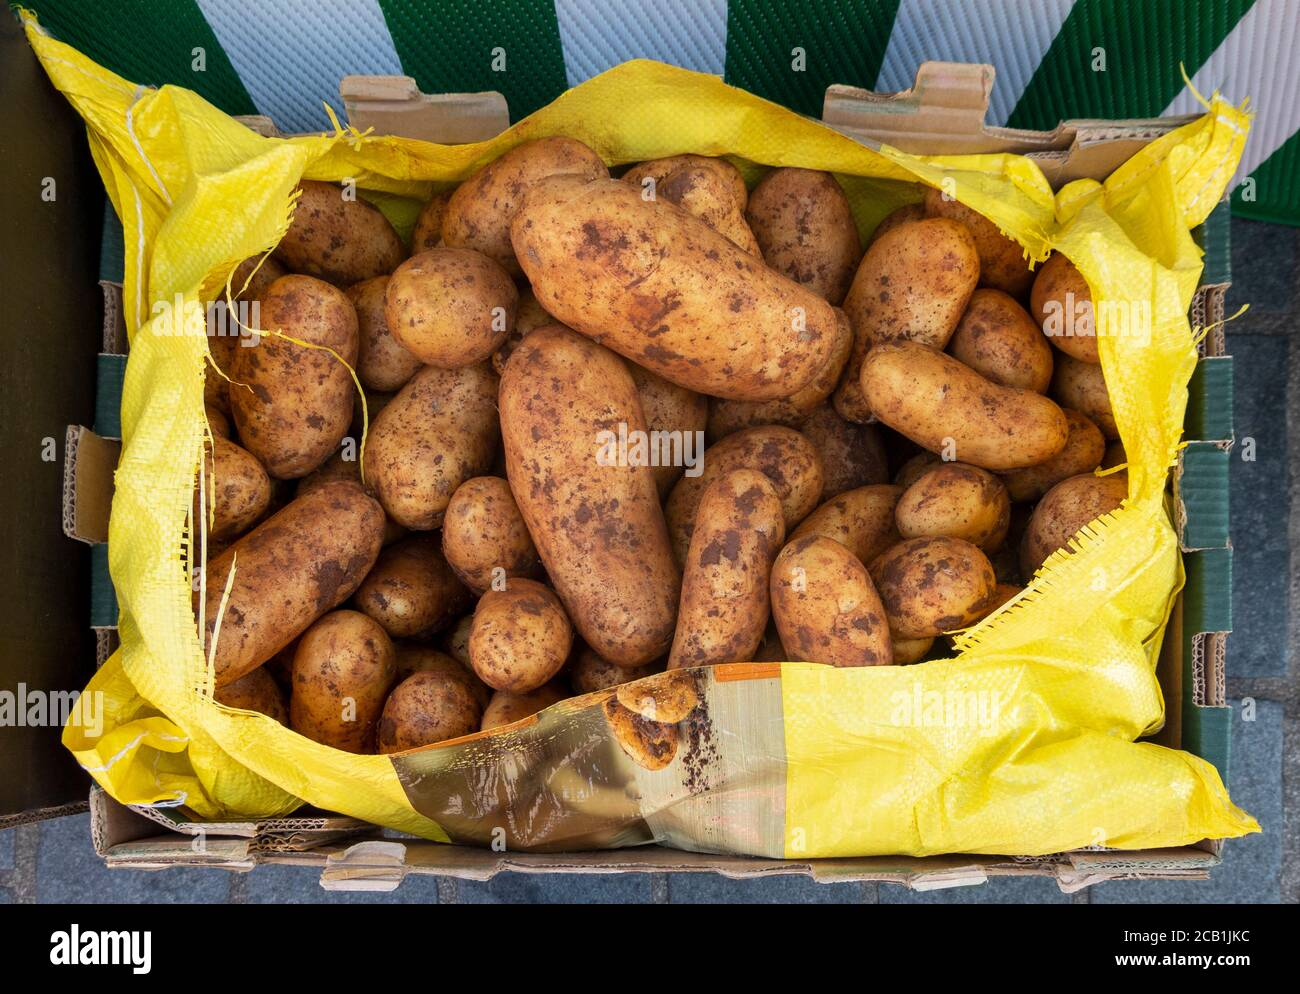 potatoes-for-sale-at-a-farmers-market-2C